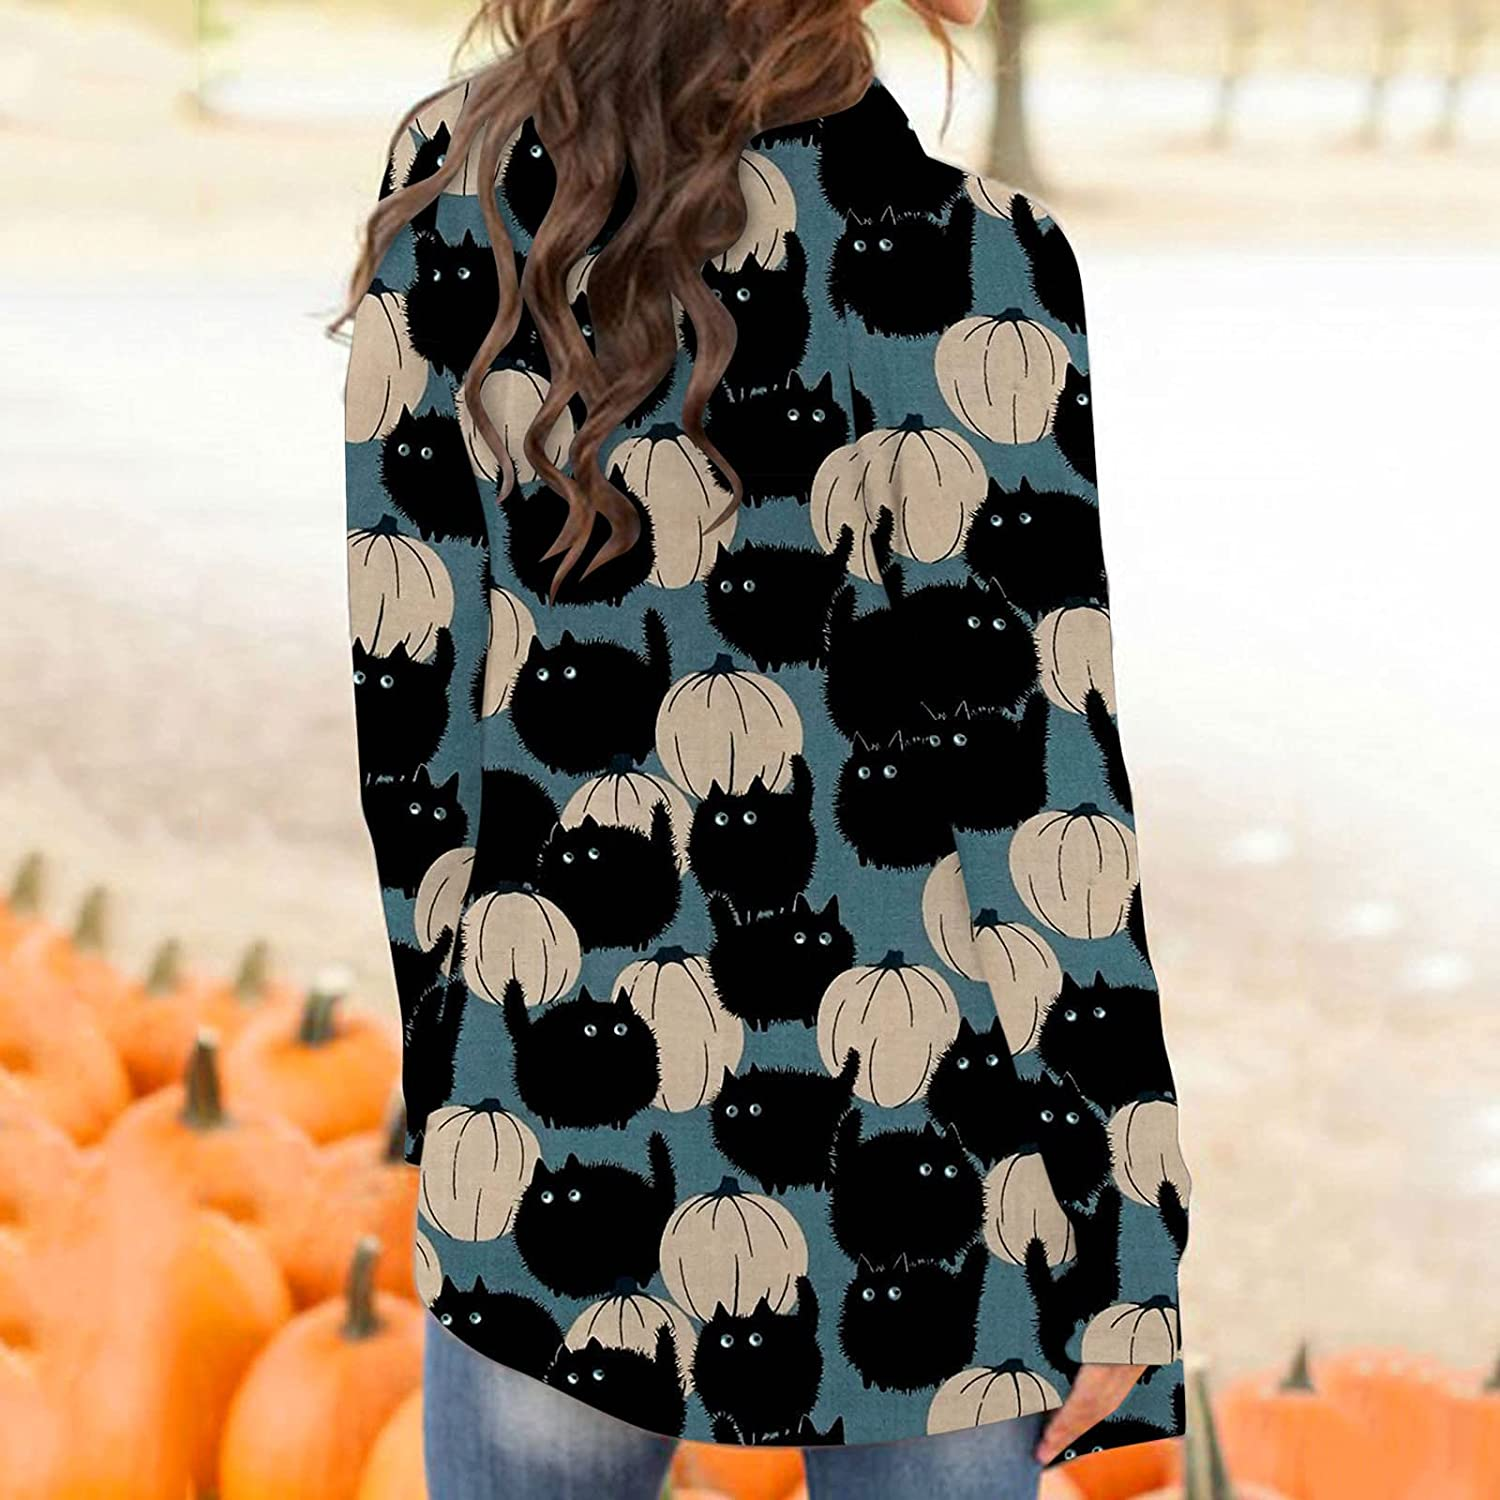 Women Halloween Long Sleeve Open Front Cardigan Shirts Funny Cute Pumpkin Animal Cat Ghost Graphic Sweaters Tops Blouse